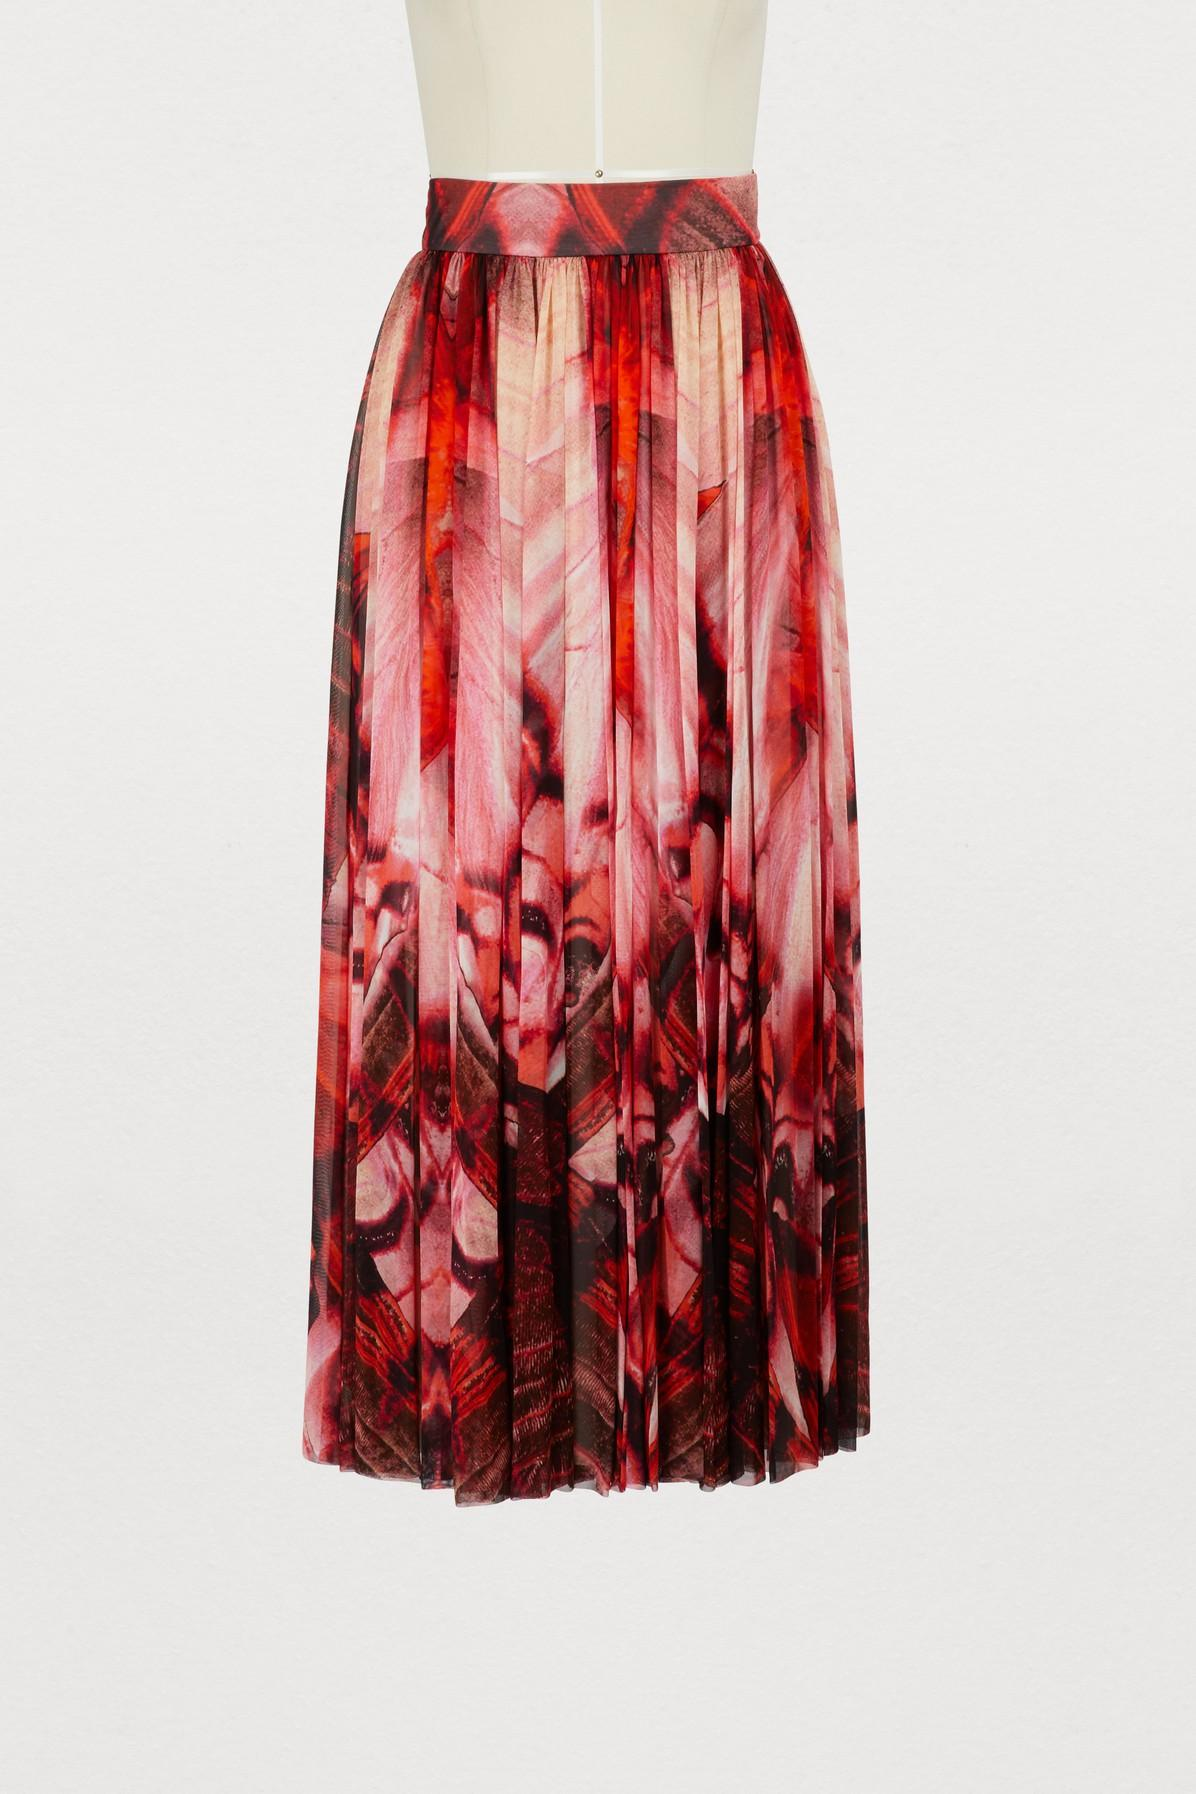 aa6ac494514f Alexander Mcqueen Butterfly-Printed CrÊPe Skirt In Red | ModeSens